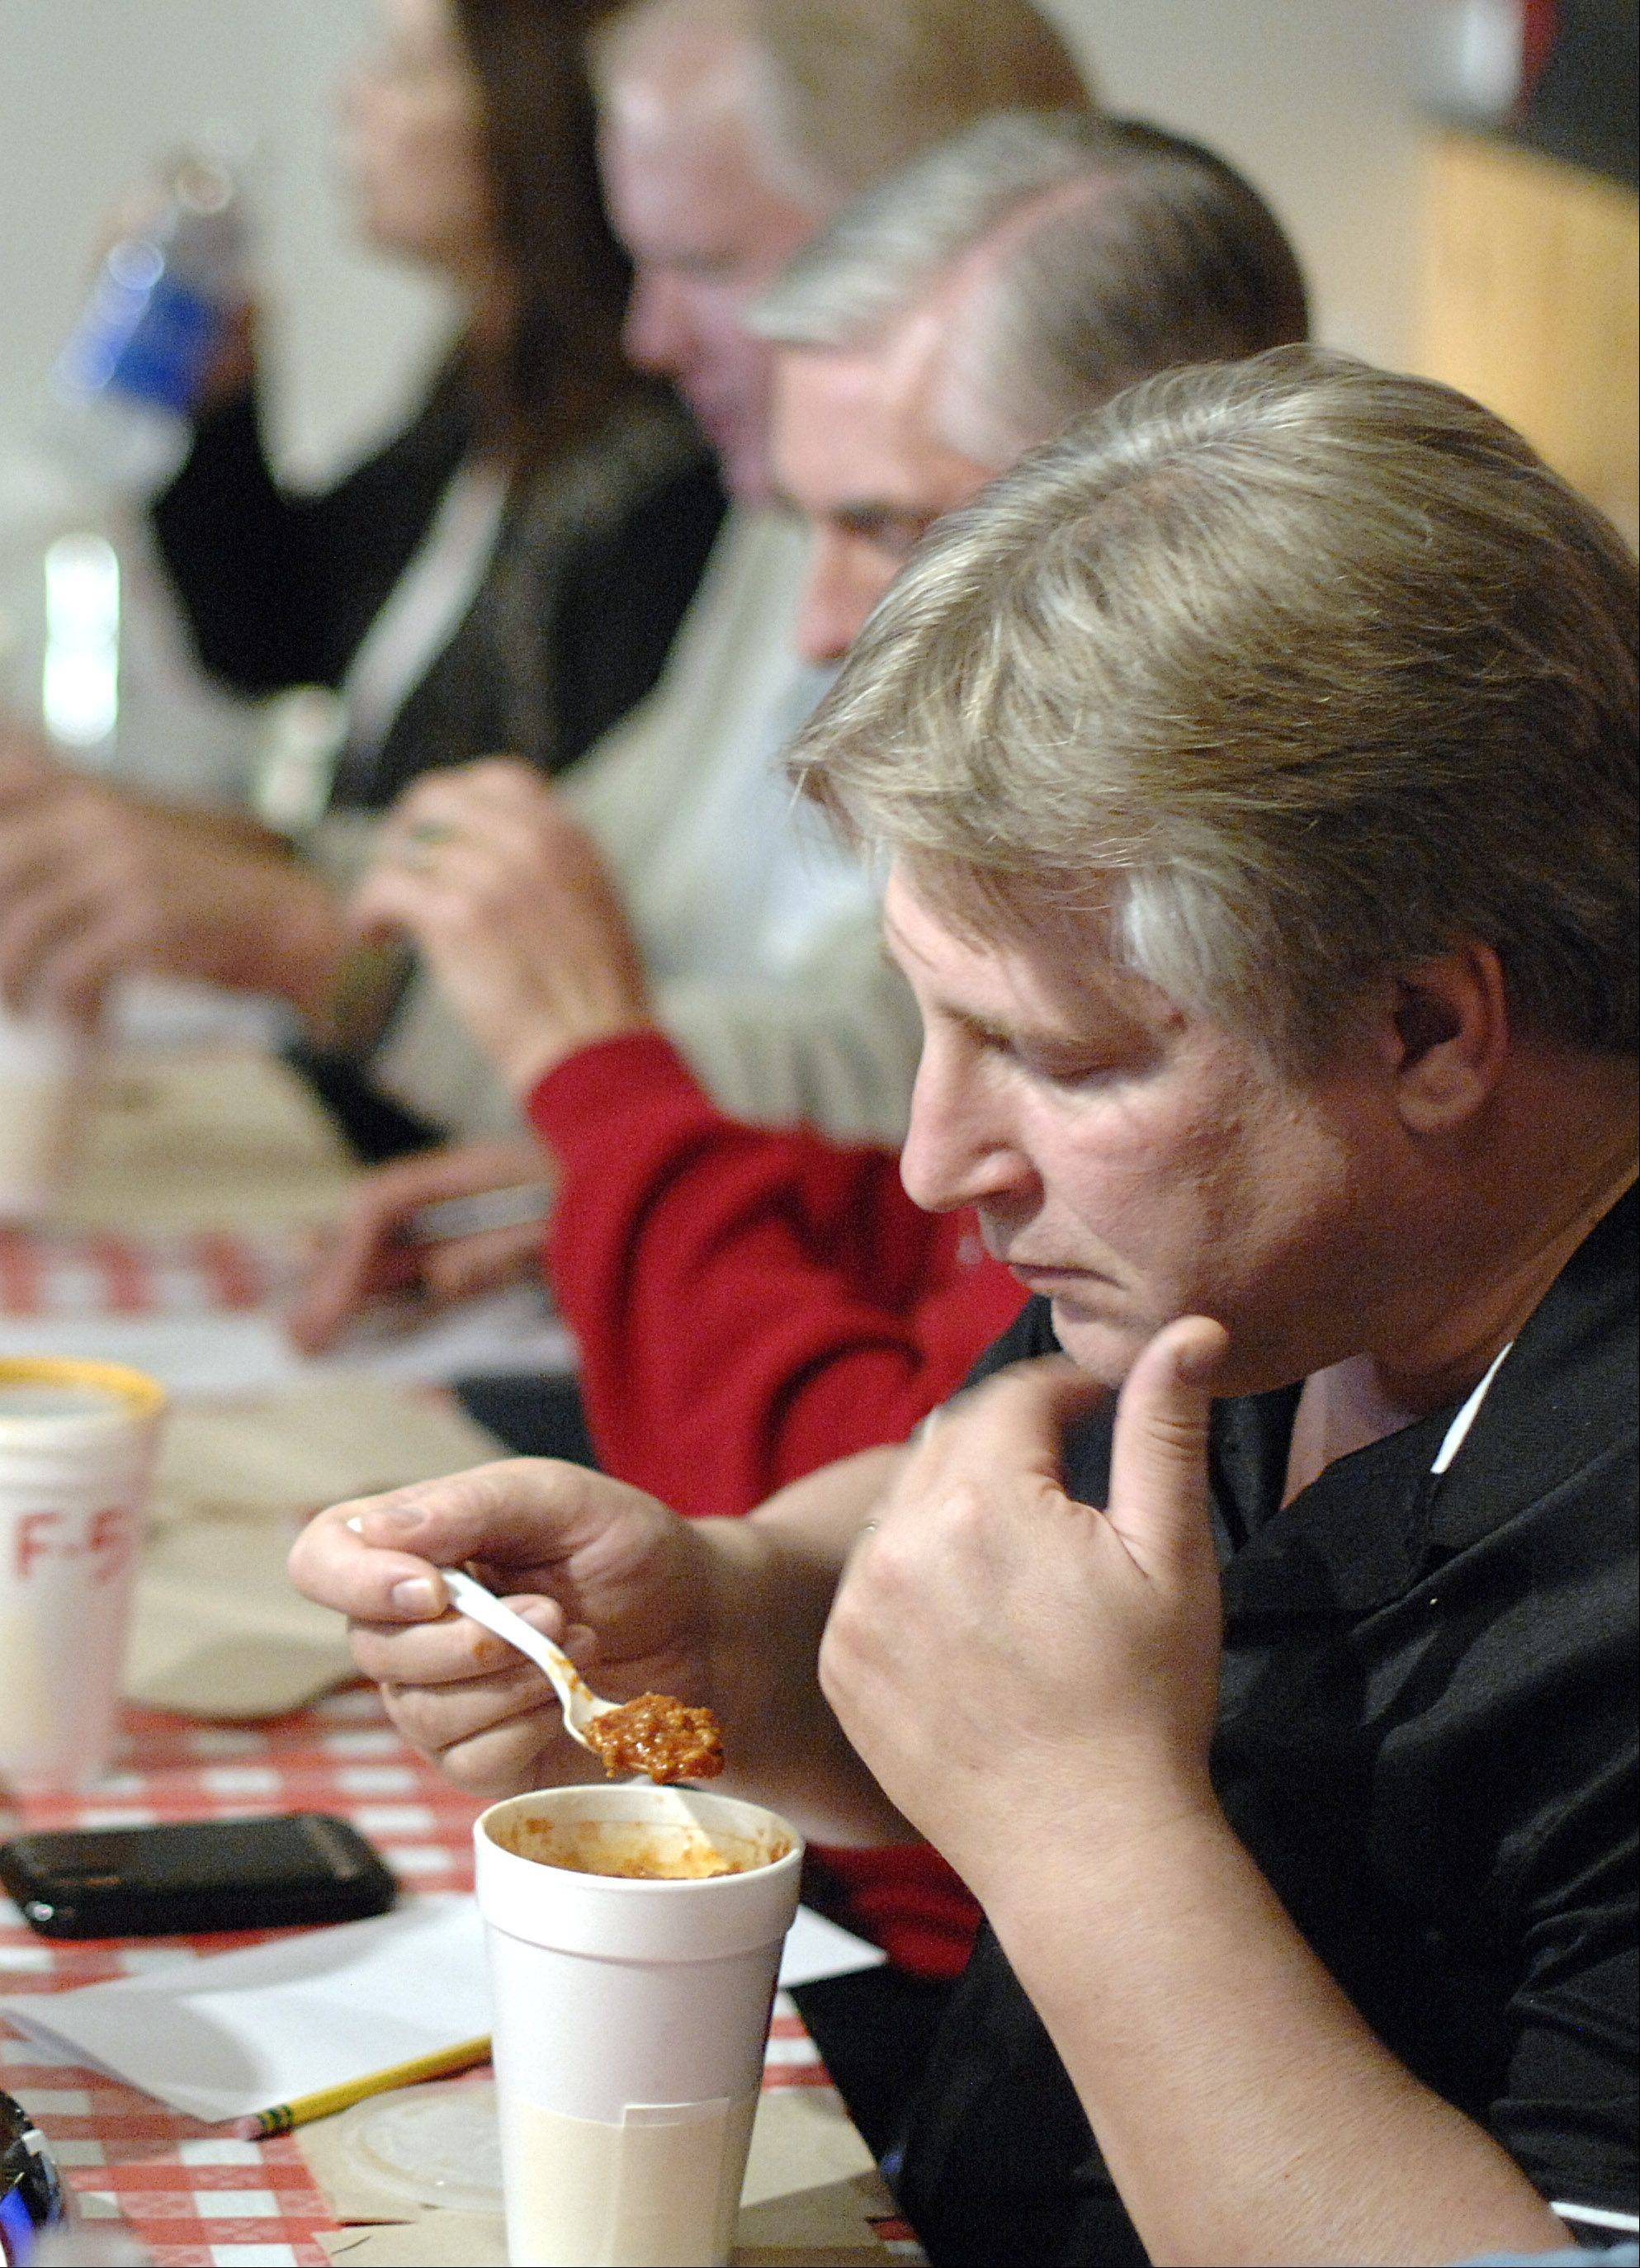 Scott Henry of Wheaton enjoys the aroma of a cup of chili before judging it at Kuipers Family Farm's third annual Chili Cook-Off in Maple Park on Saturday. All proceeds of the competition go to Conley Outreach Community Services in Elburn.